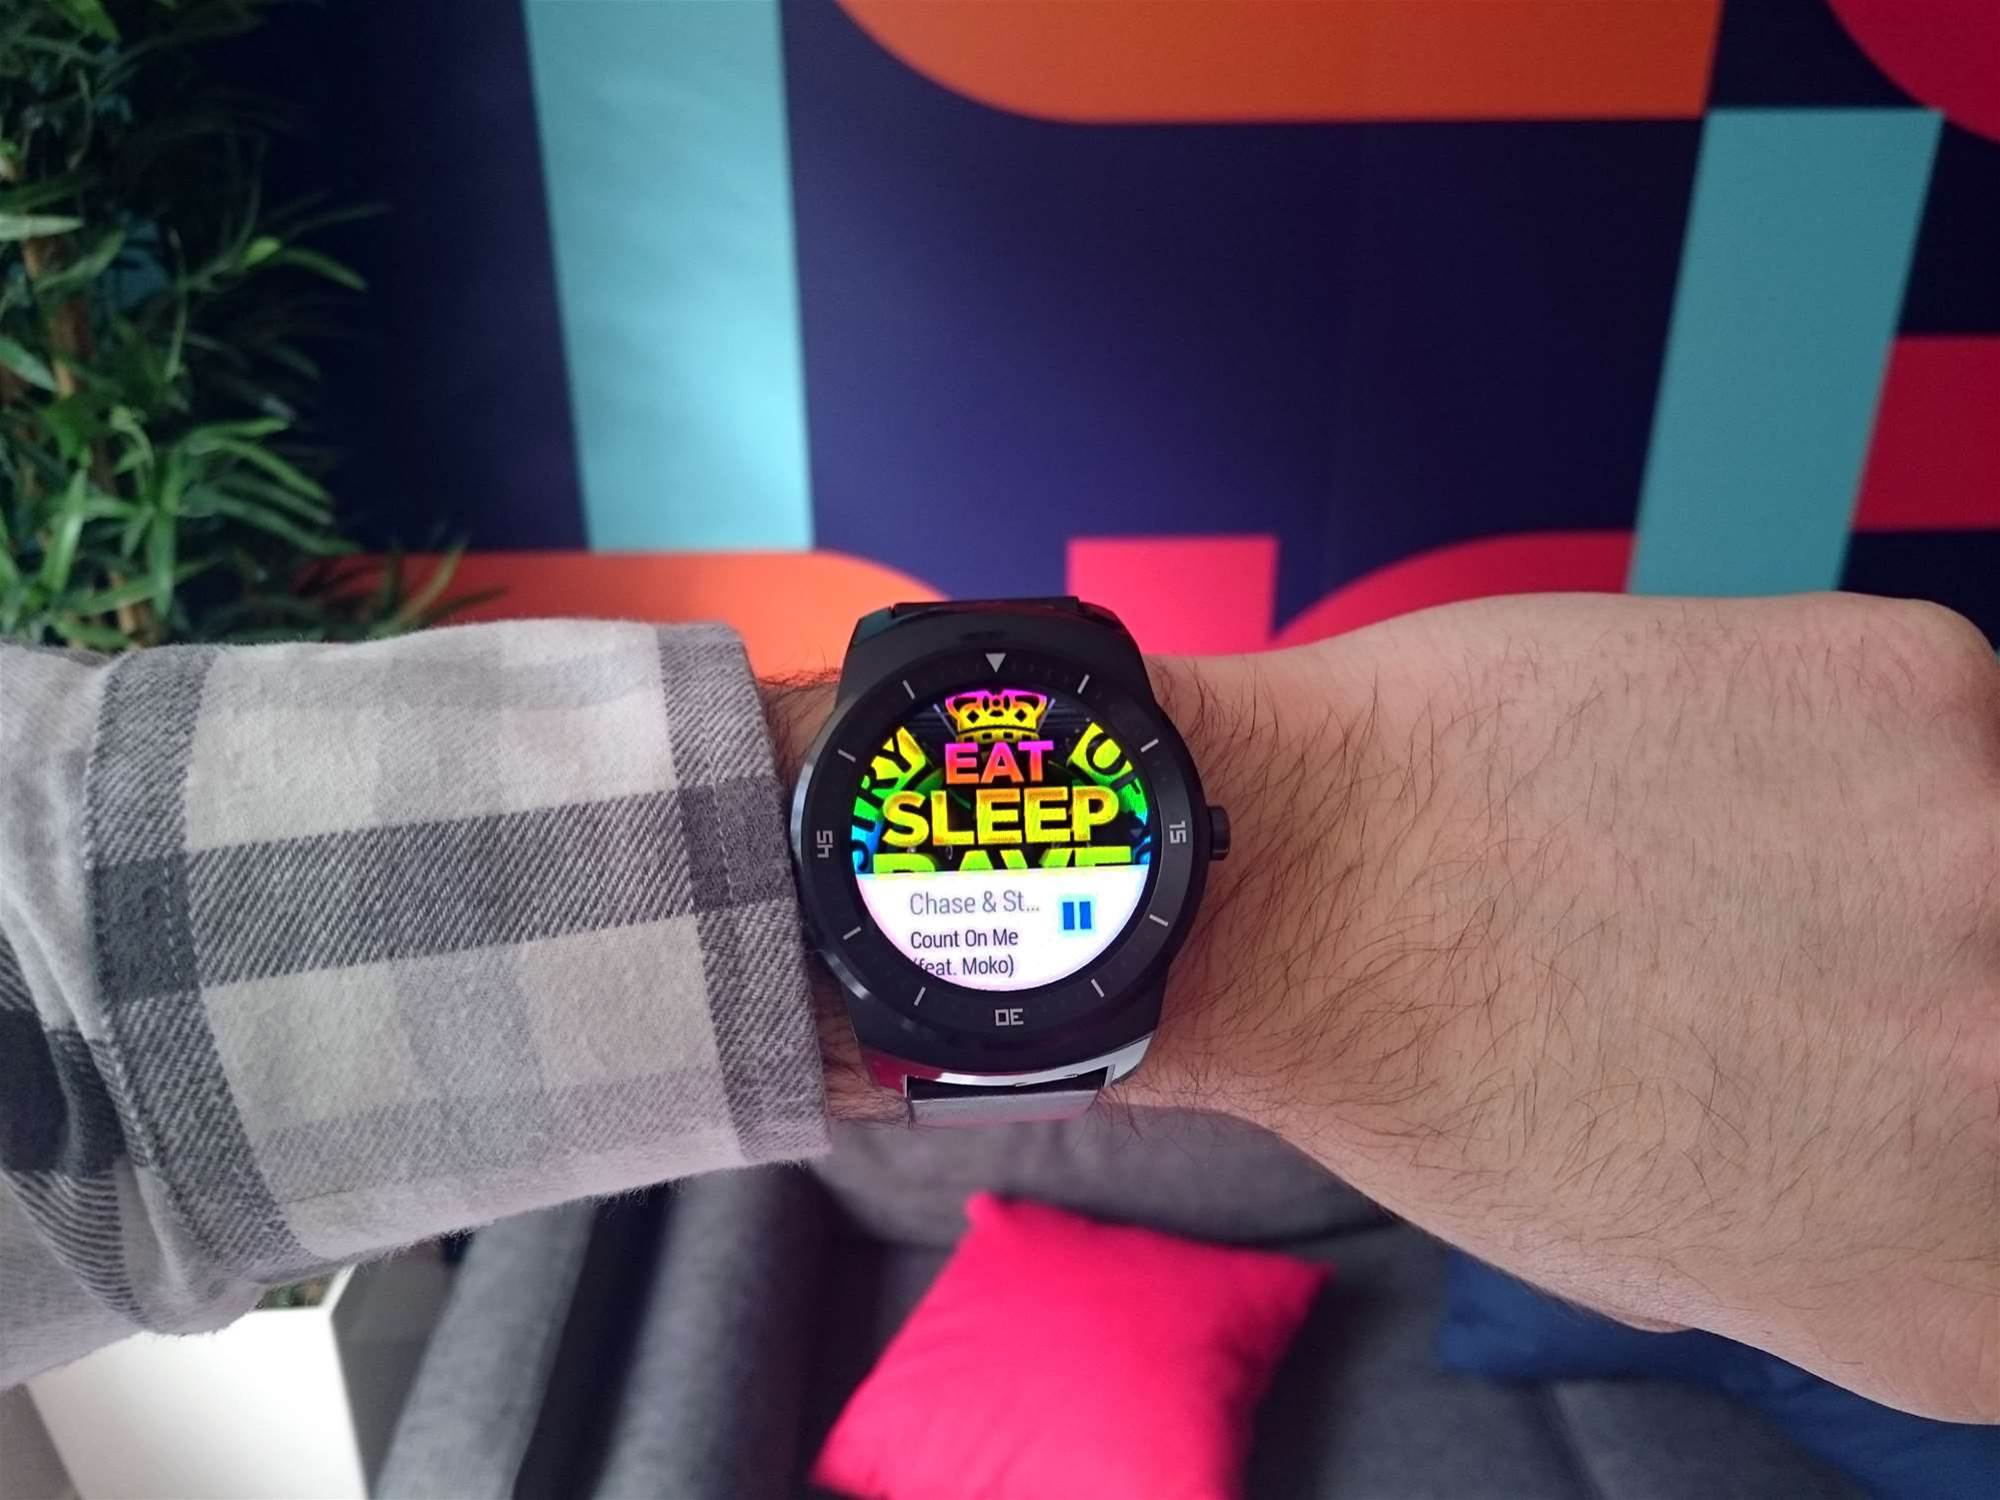 New Android Wear update activates Wi-Fi, flick controls, emoji